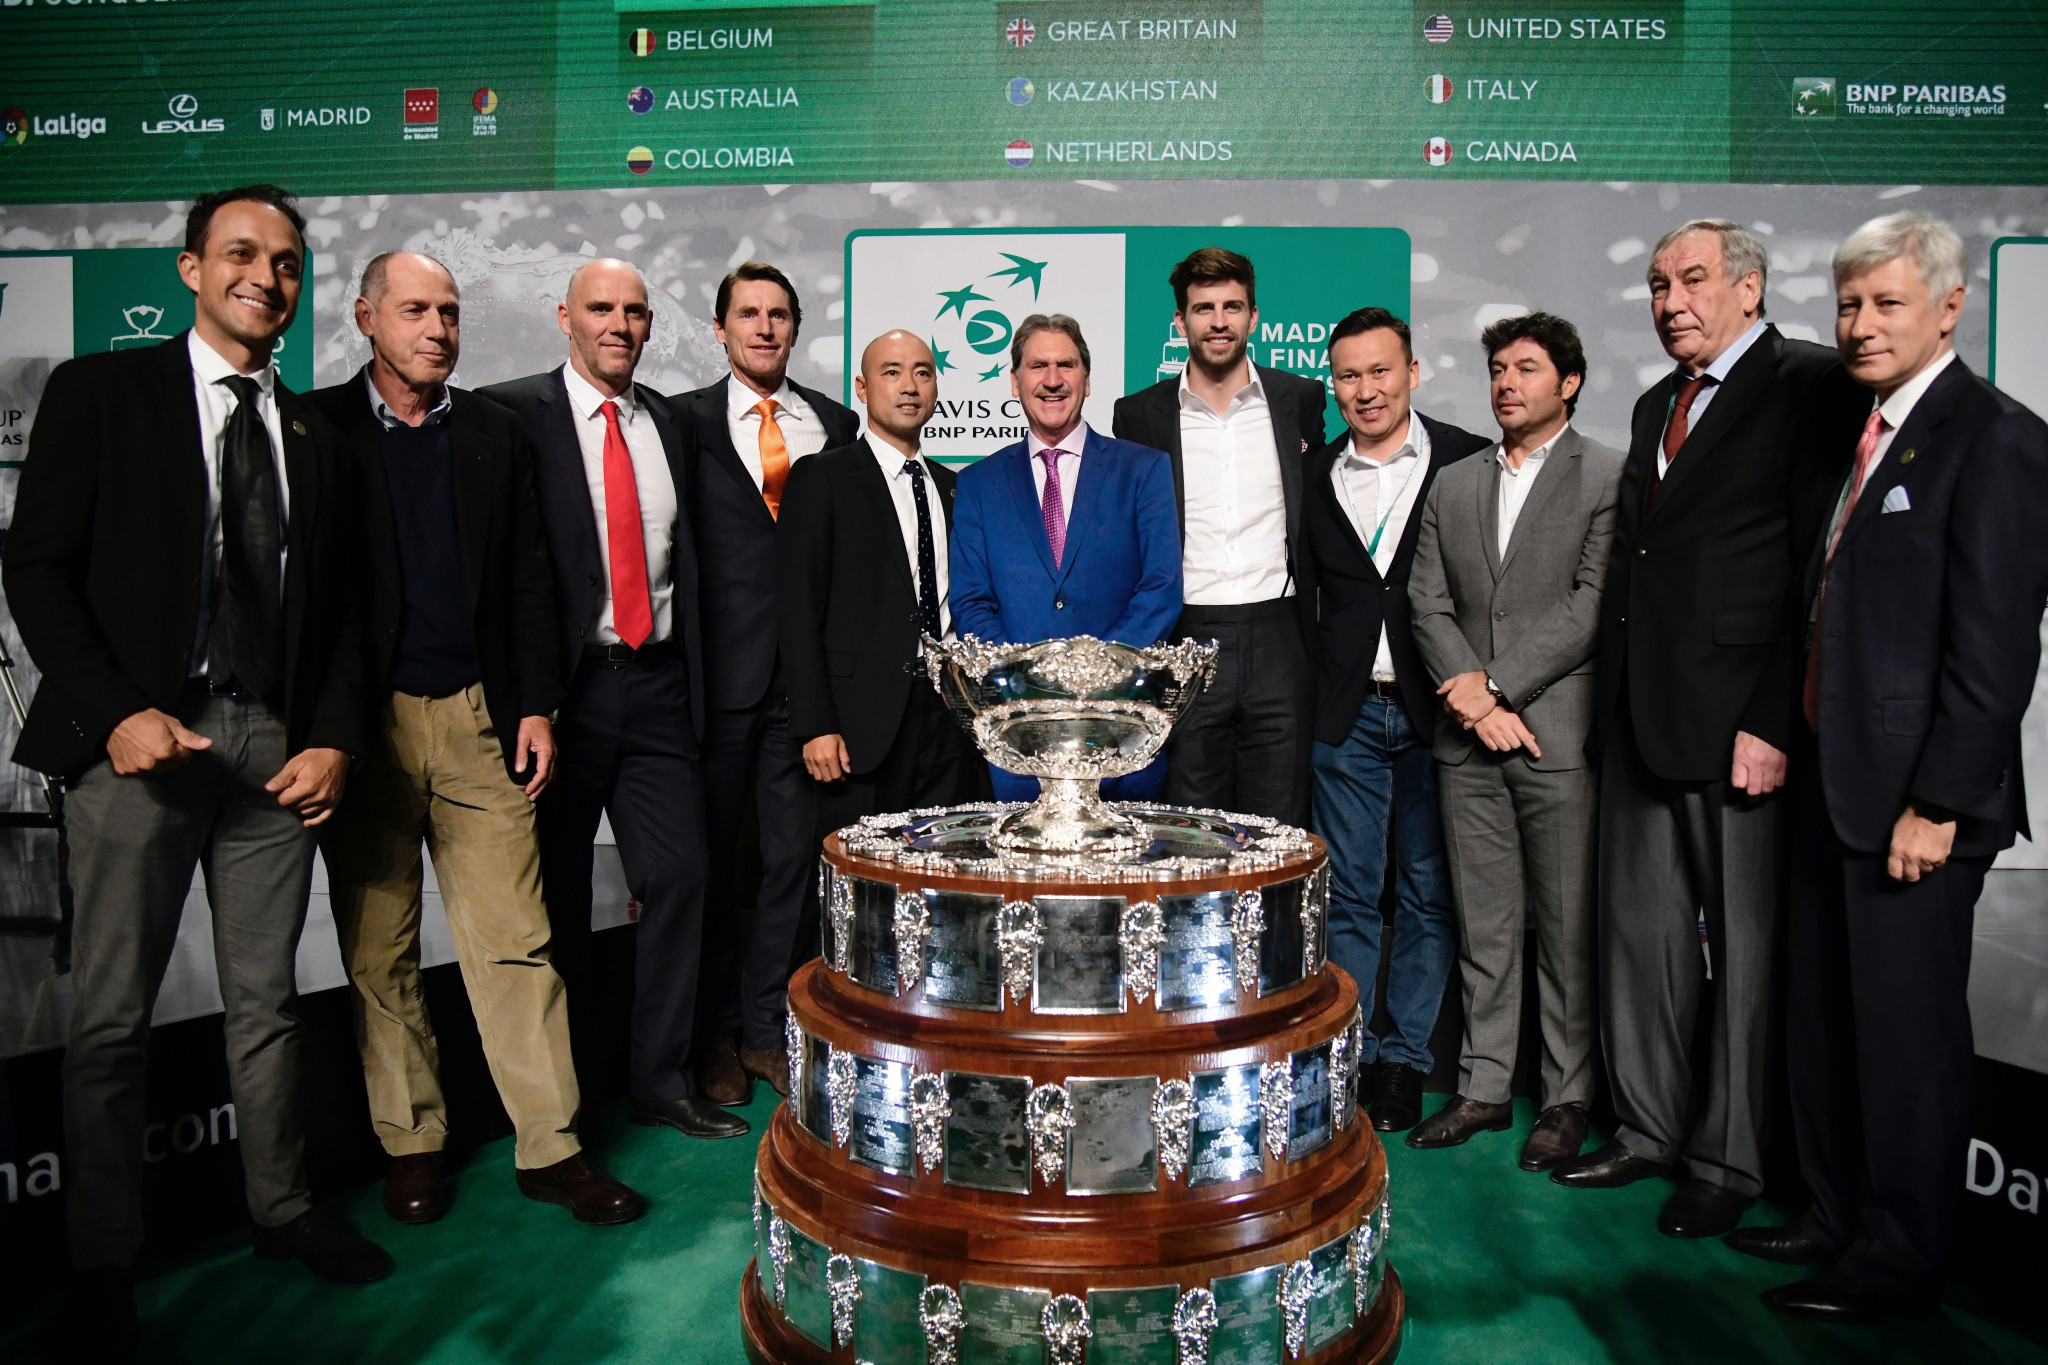 The revamp to the Davis Cup will impact the accounts as well as being a key issue for the electorate ©Getty Images